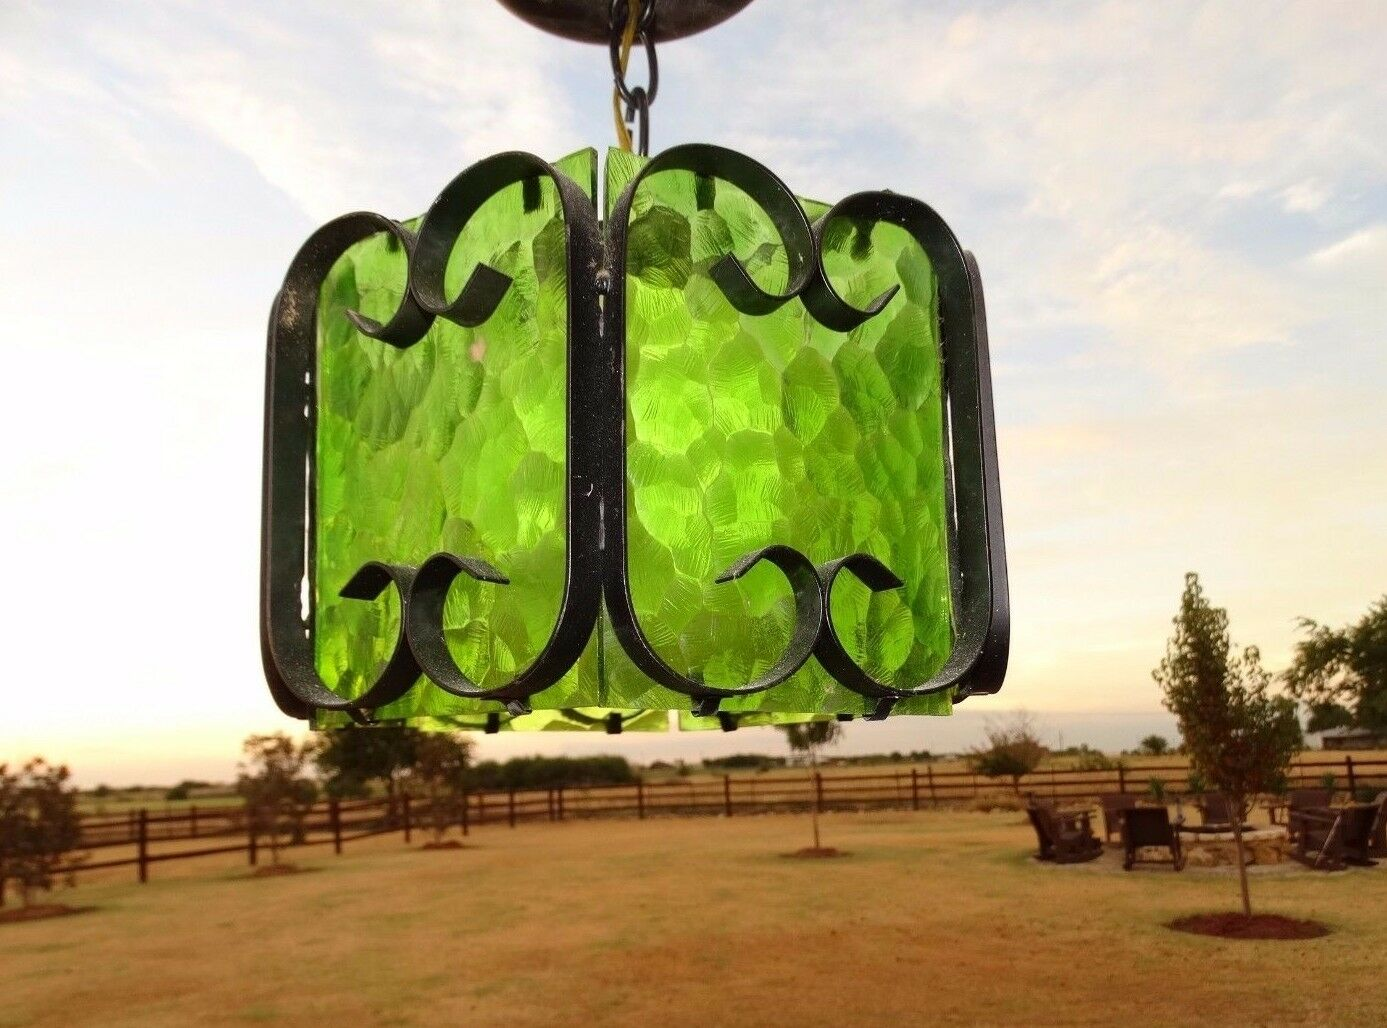 15065 Vintage Hanging Metal Wrought Iron Lamp Light / Green Glass Spanish Gothic